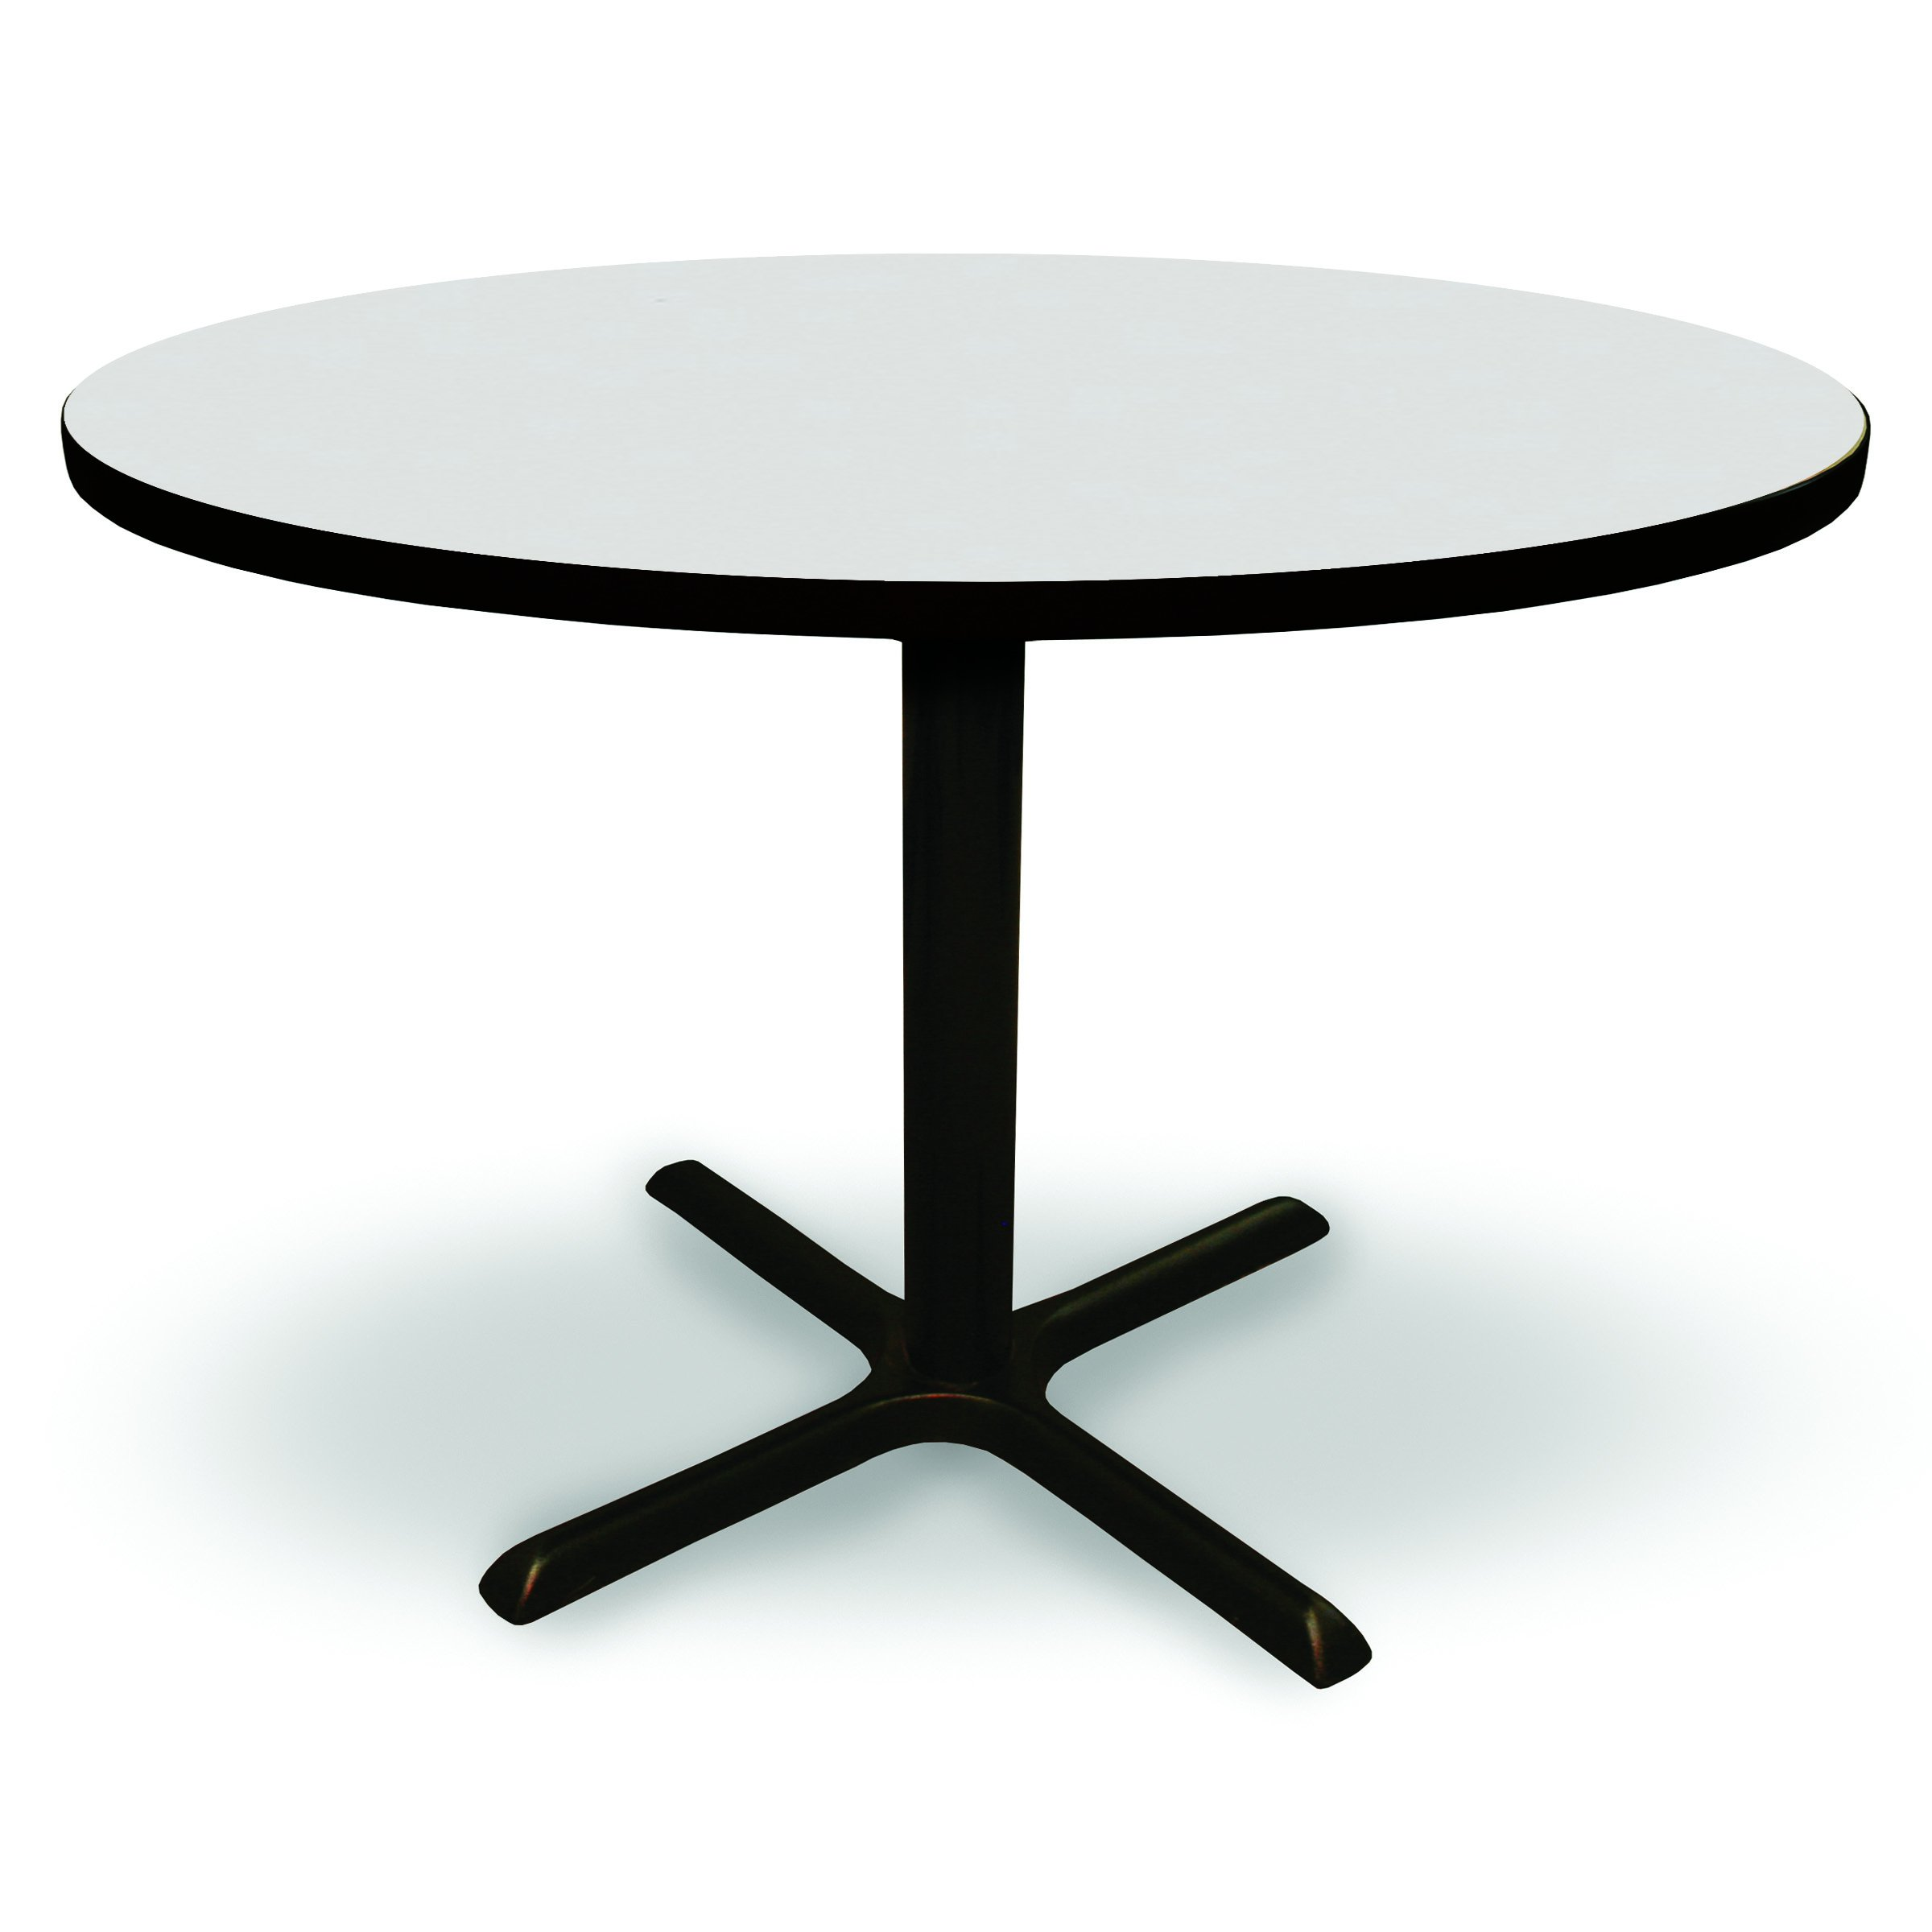 48'' Round Conference, Break Room, Multipurpose Table - Platinum Laminate/Black Finish